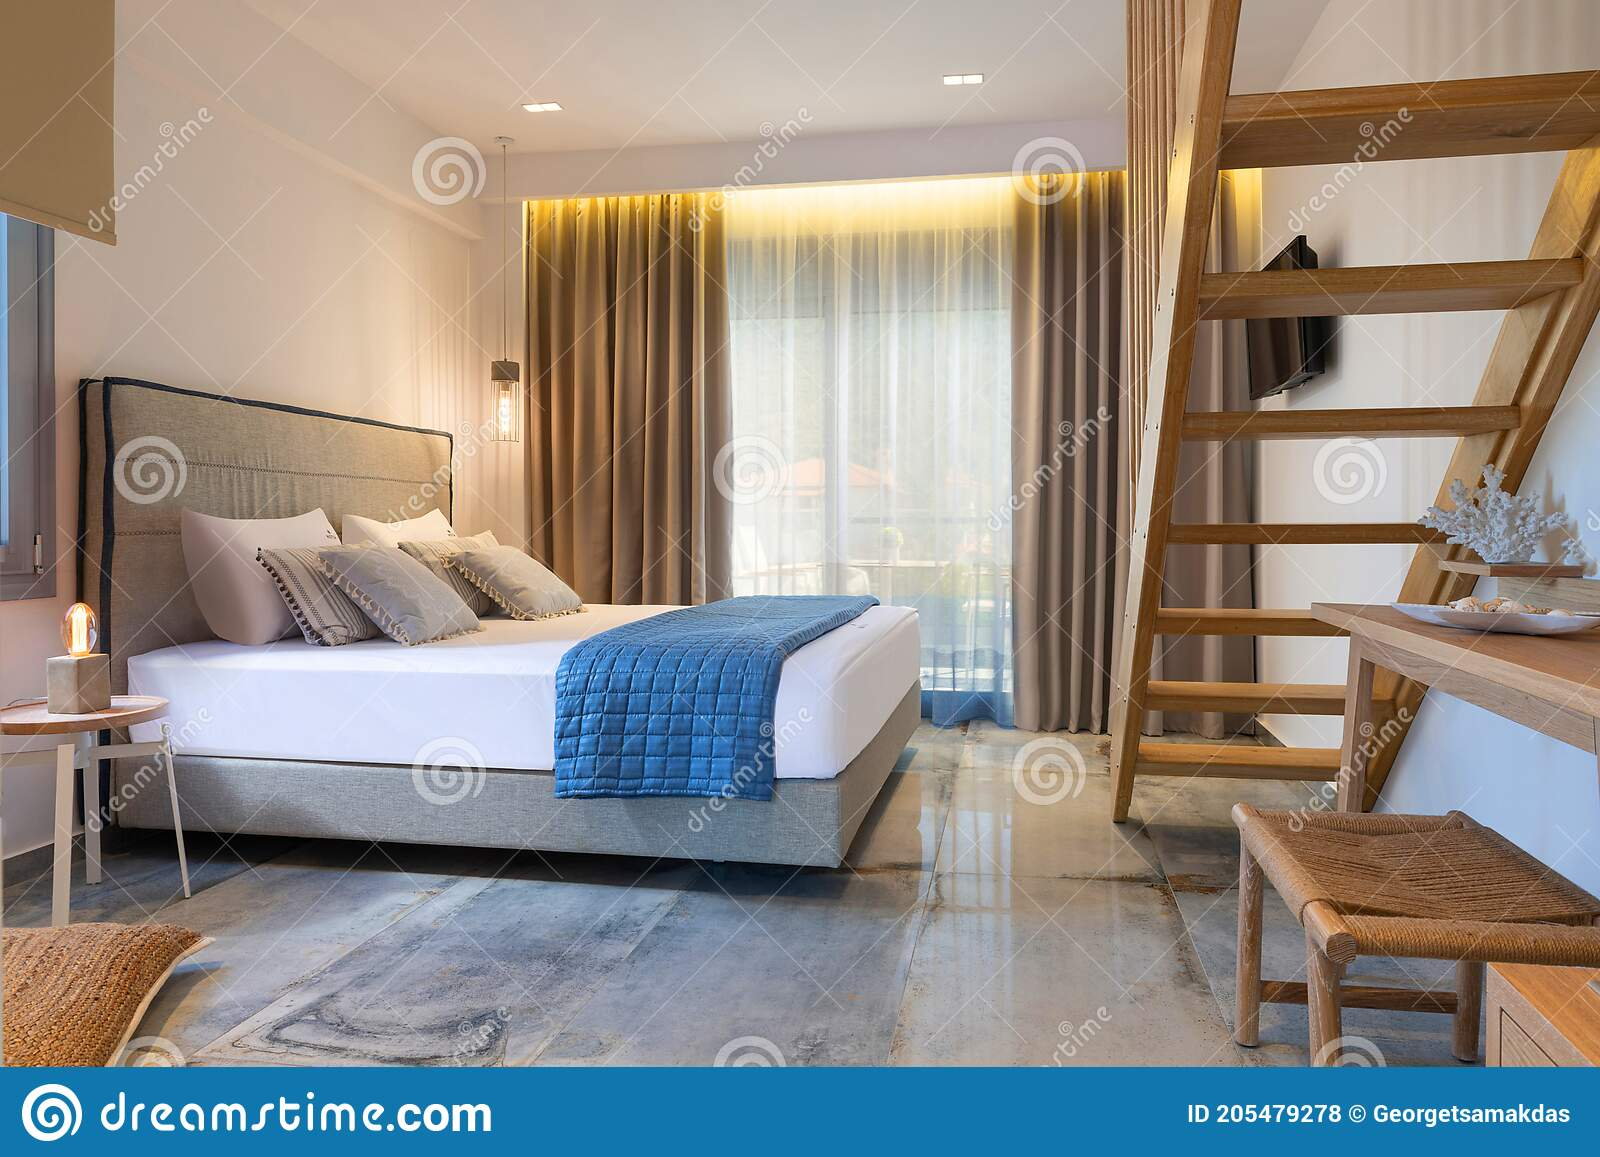 Modern Nautical Style Interior Of Hotel Apartment White Bedroom With Pine Wood Ladder Handmade Wooden Furniture Double Bed Stock Photo Image Of Cozy Ceramic 205479278